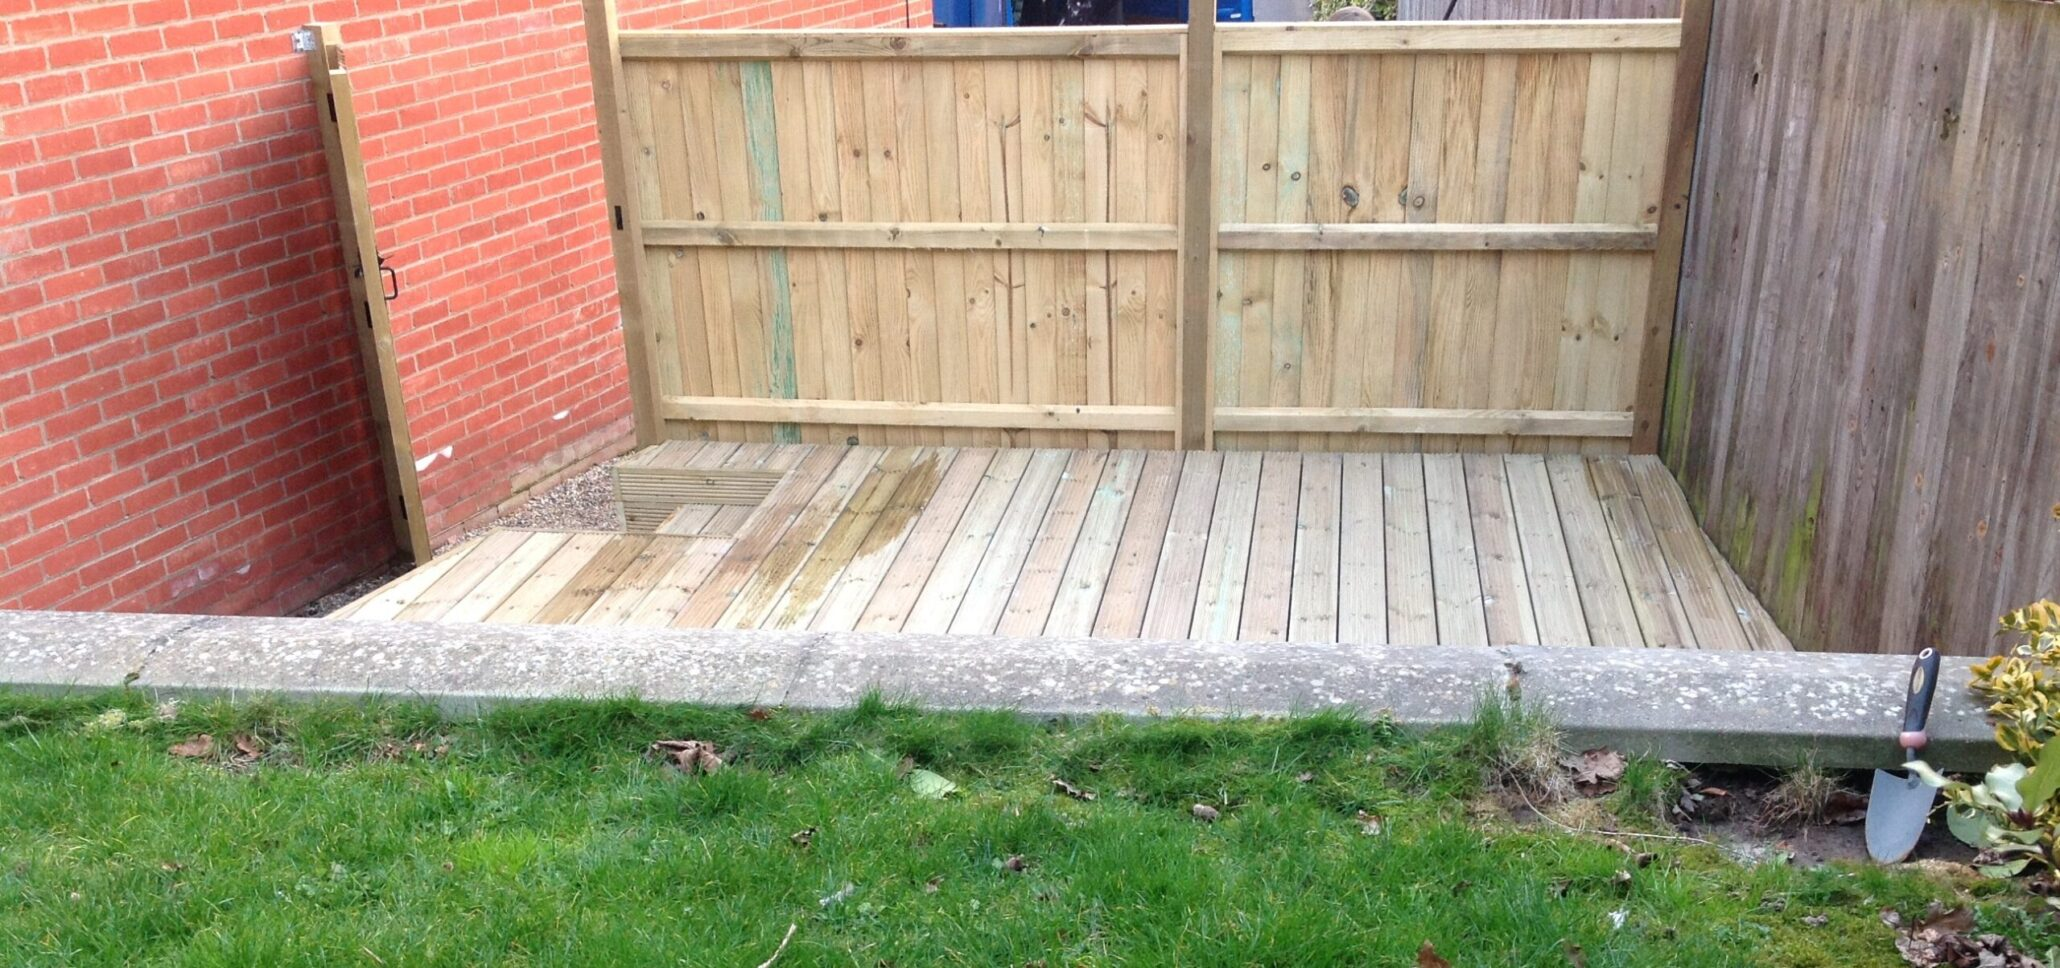 Fencing norwich norwich decking co decking installed behind fence panels with a gate for privacy baanklon Choice Image